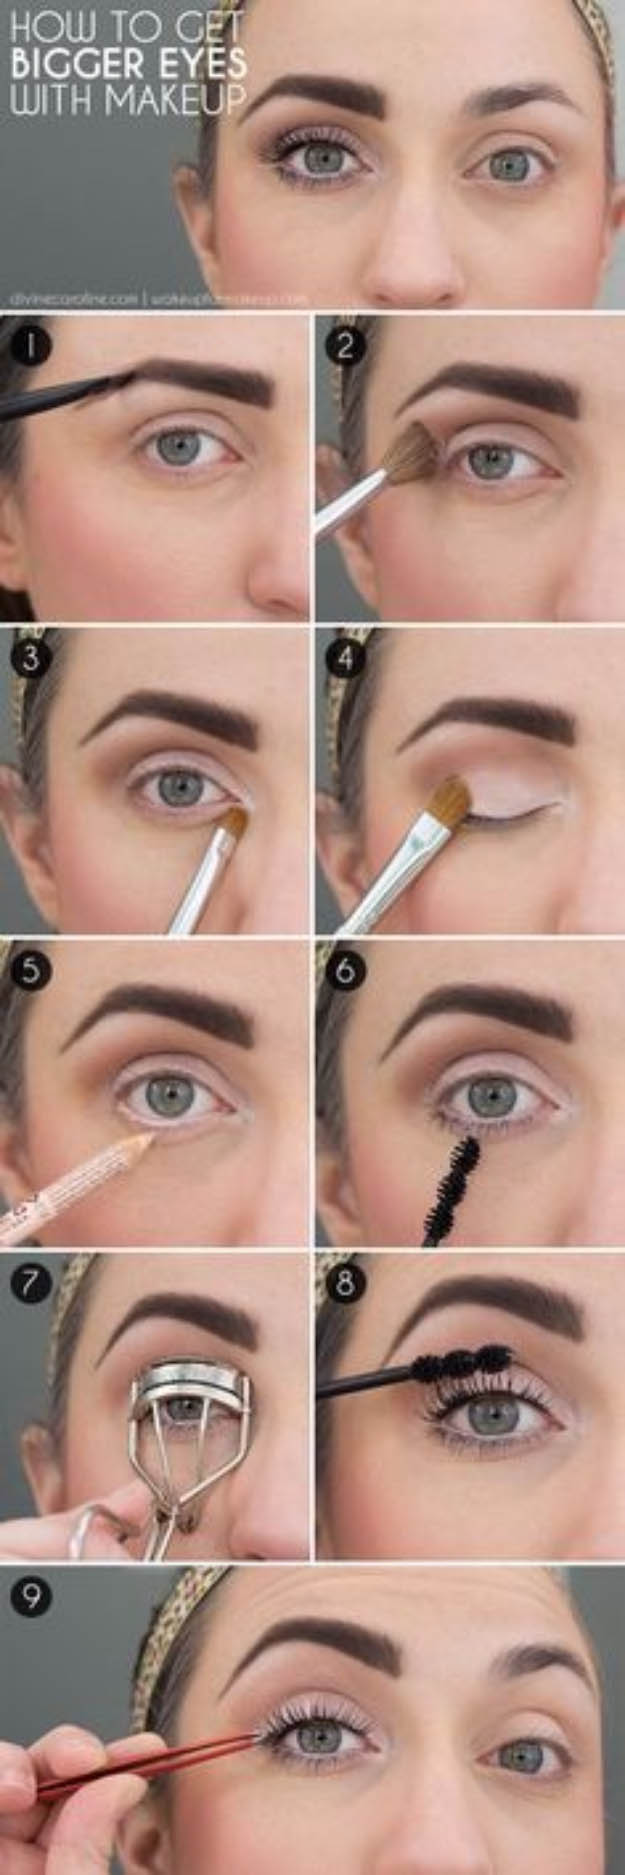 Makeup Tutorials For Small Eyes How To Make Your Eyes Look Bigger